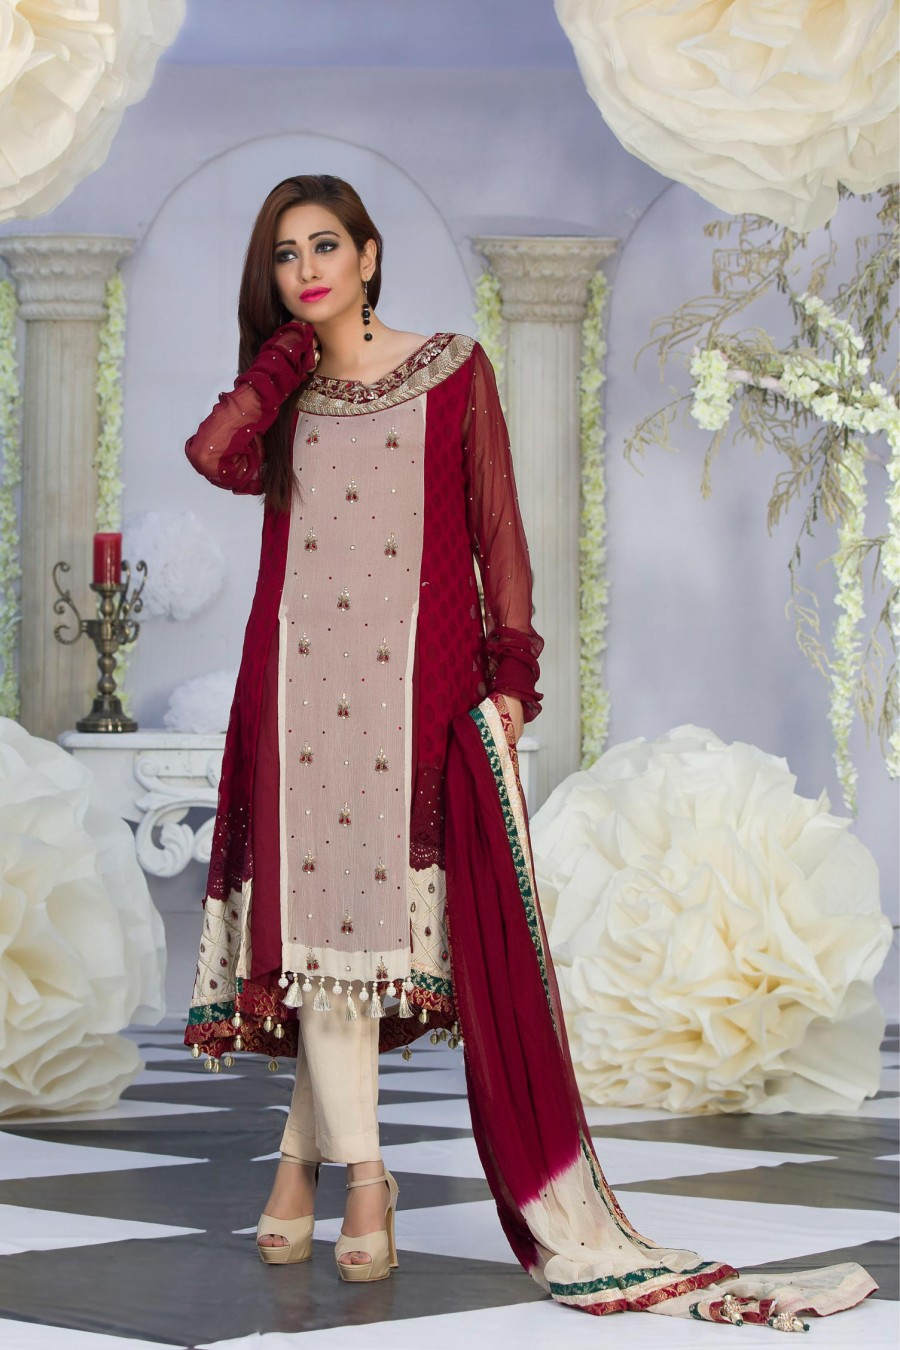 1e9c9f3471 25 Latest Trends in Pakistani Party Dresses 2018 - Dresses - Crayon